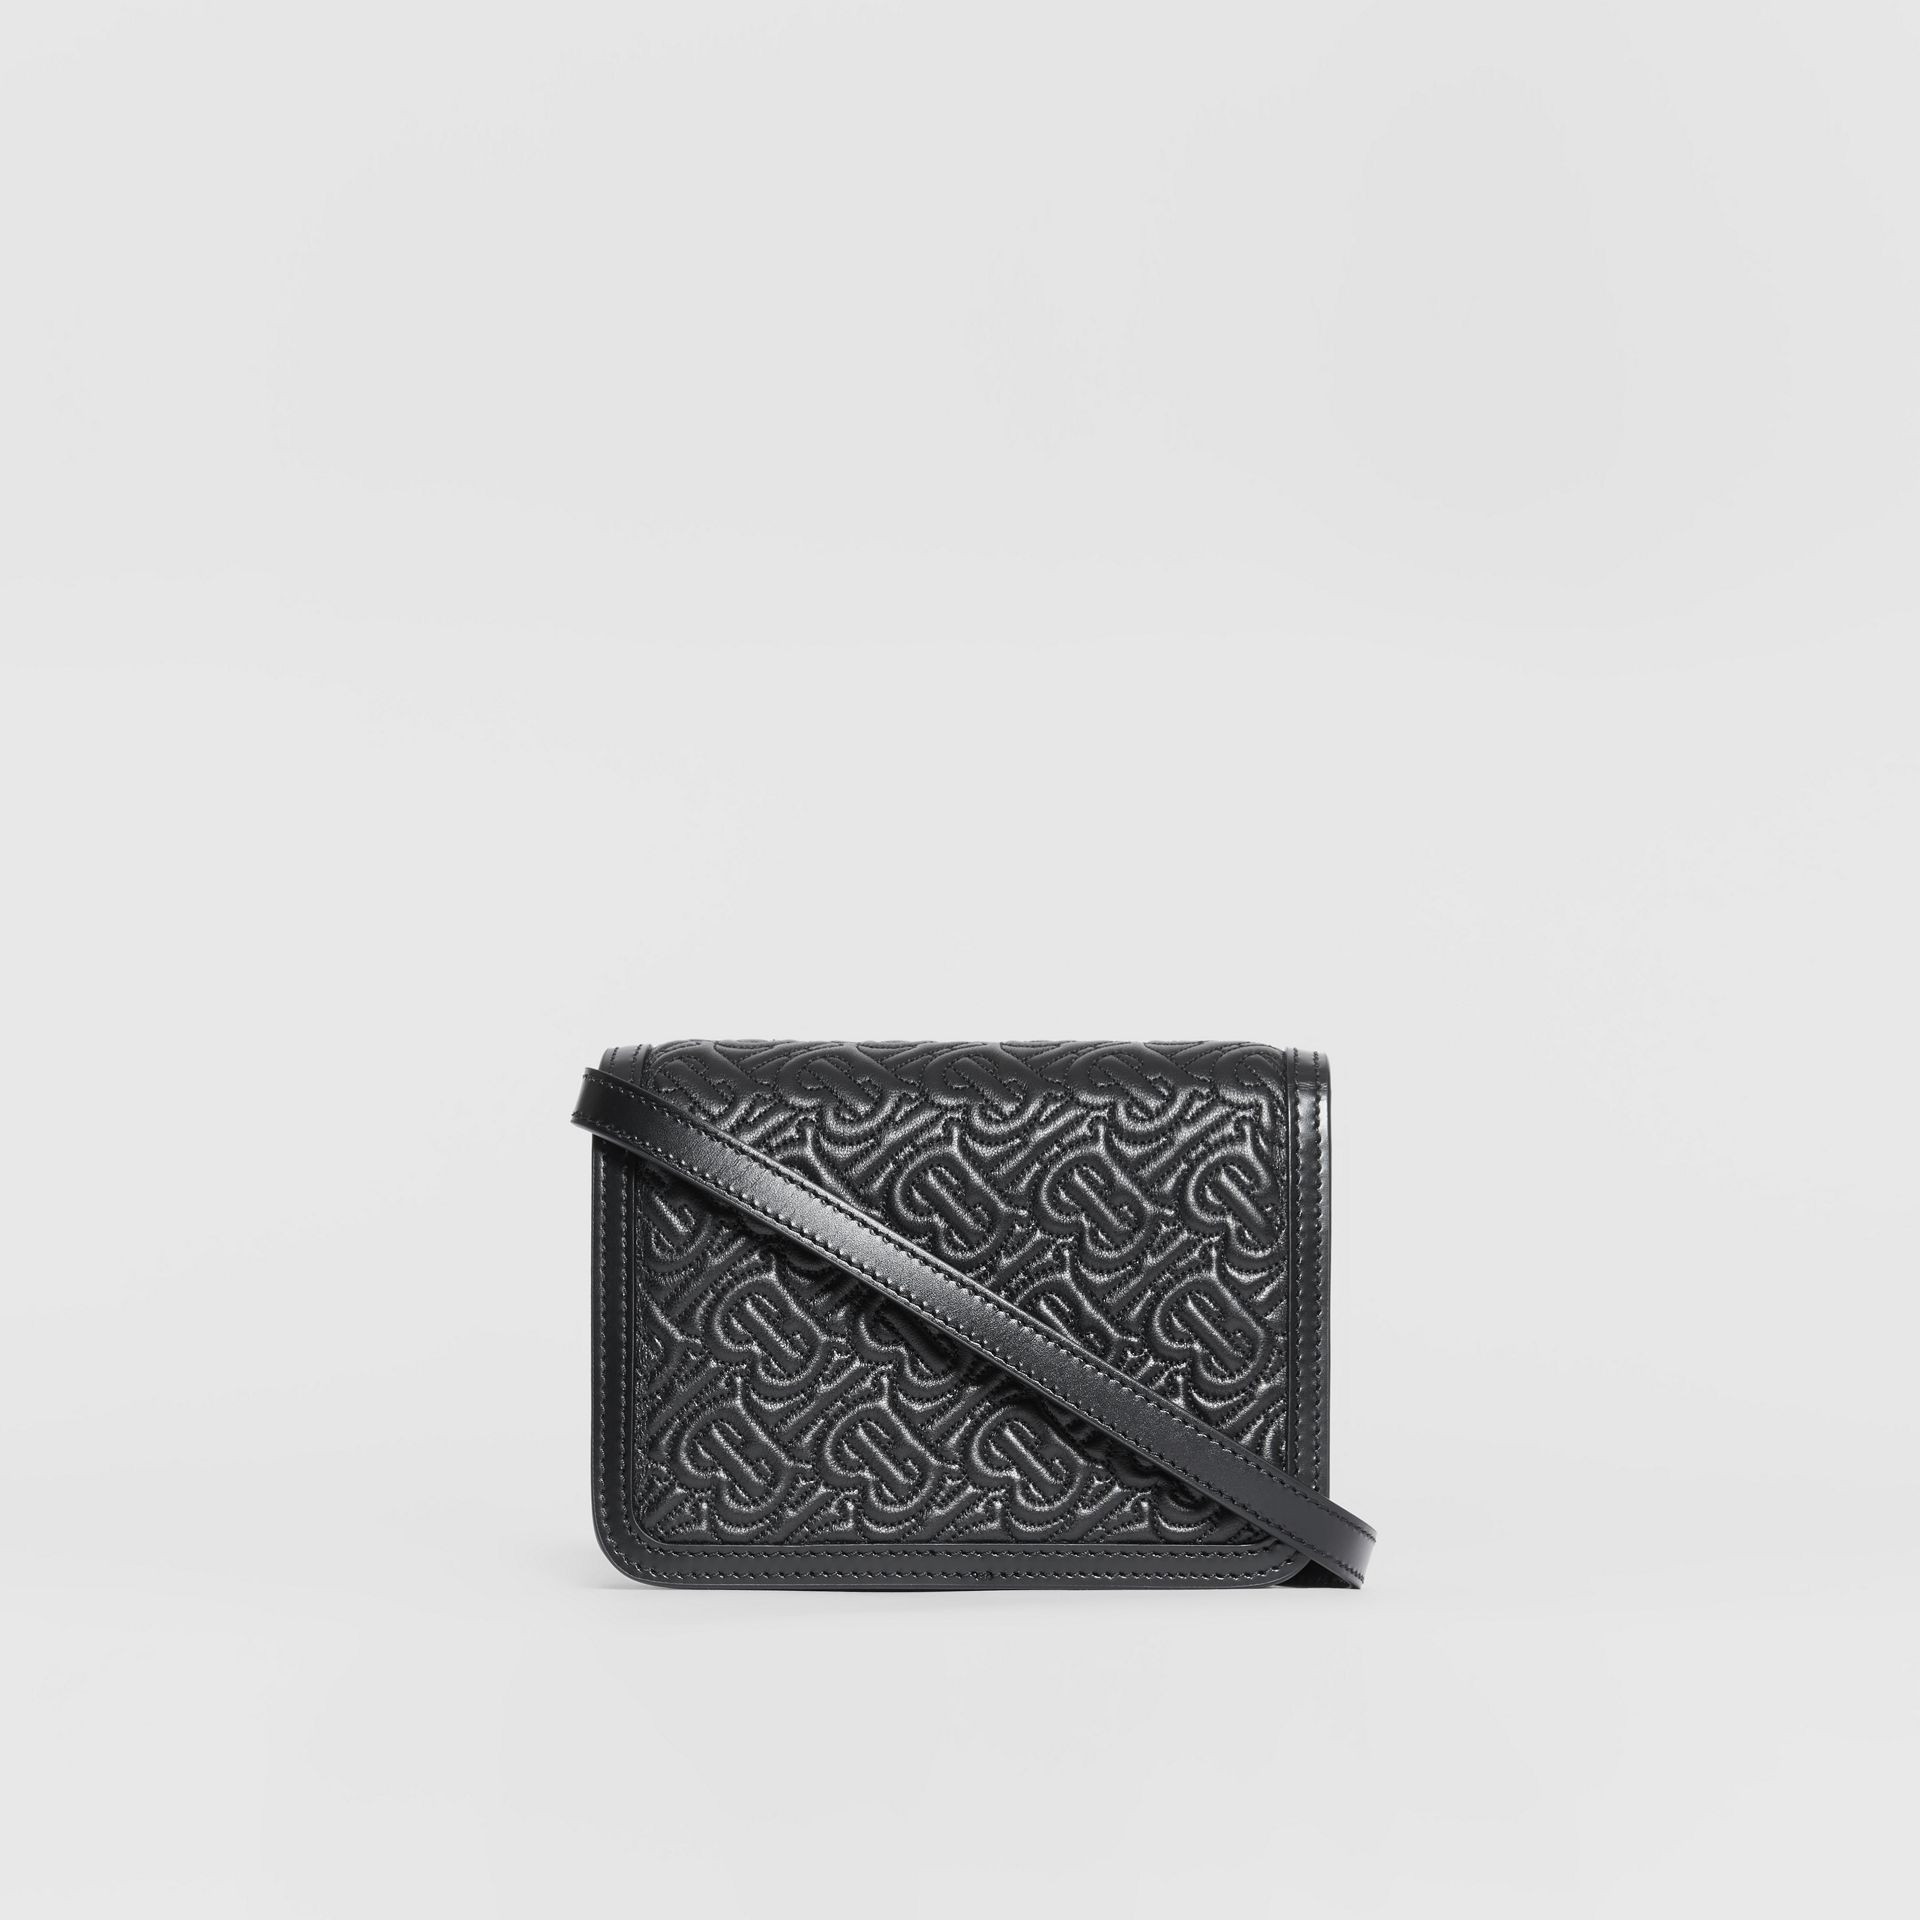 Mini Quilted Monogram Lambskin TB Bag in Black - Women | Burberry United Kingdom - gallery image 5